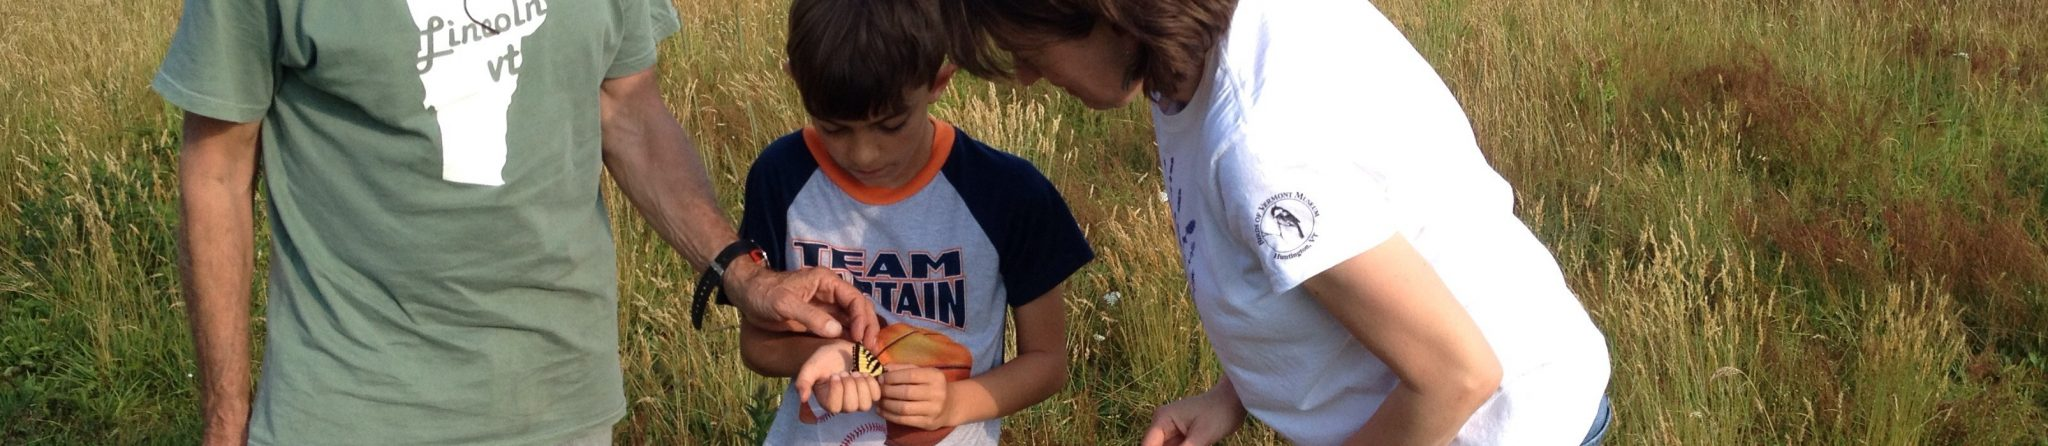 Child holding swallowtail butterfly (pollinator) with two adults looking on.